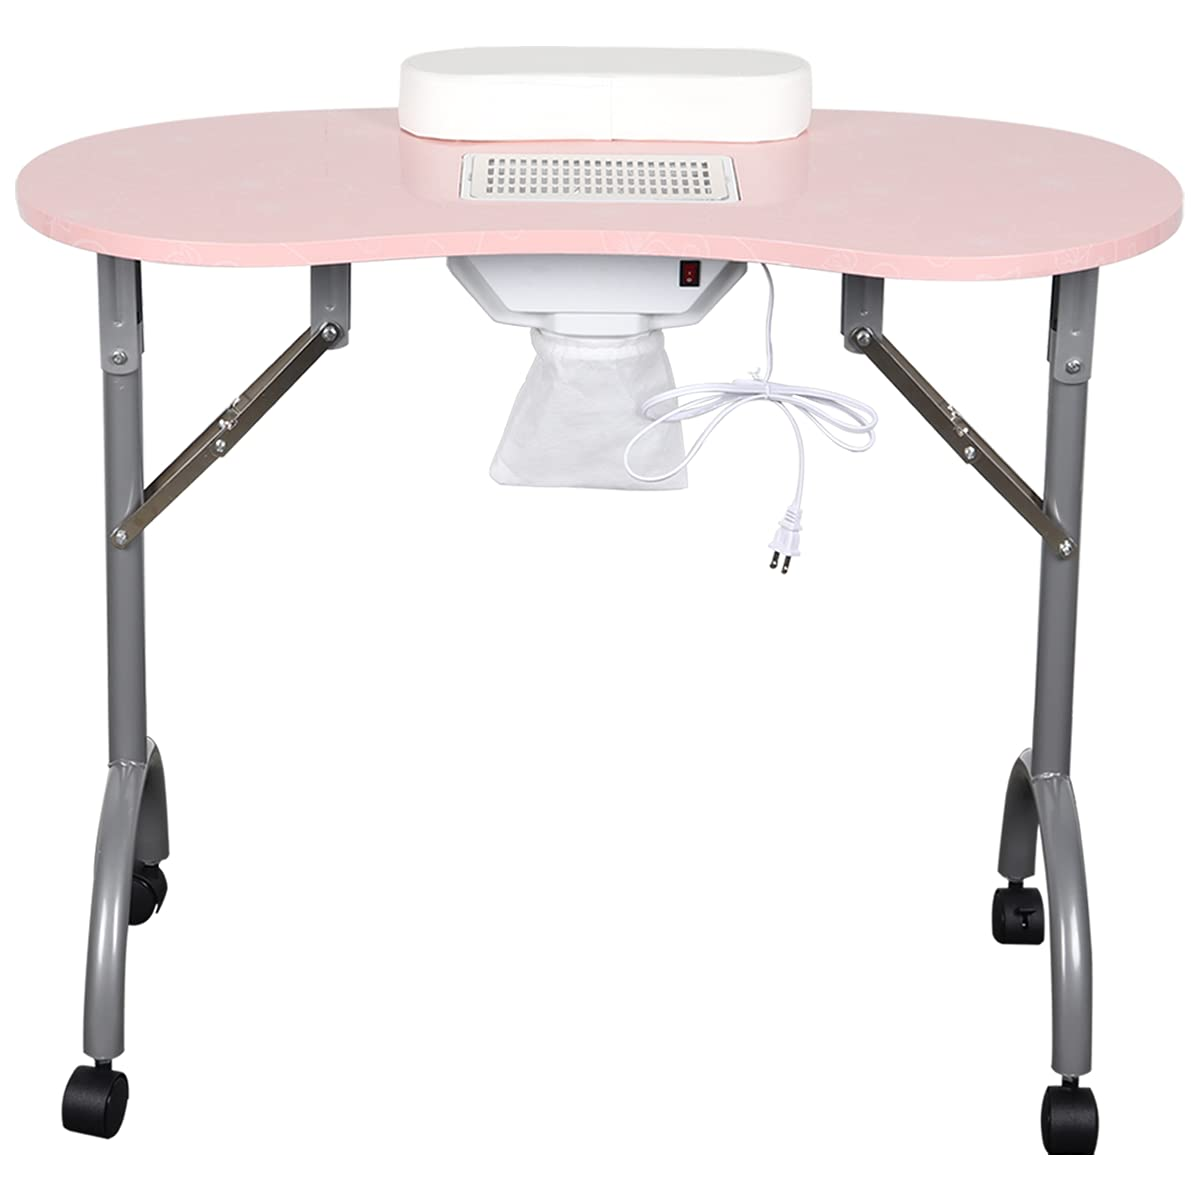 CHAOEEMY Nail Desk Animer and price revision Portable Professional New arrival Ta Manicure Table